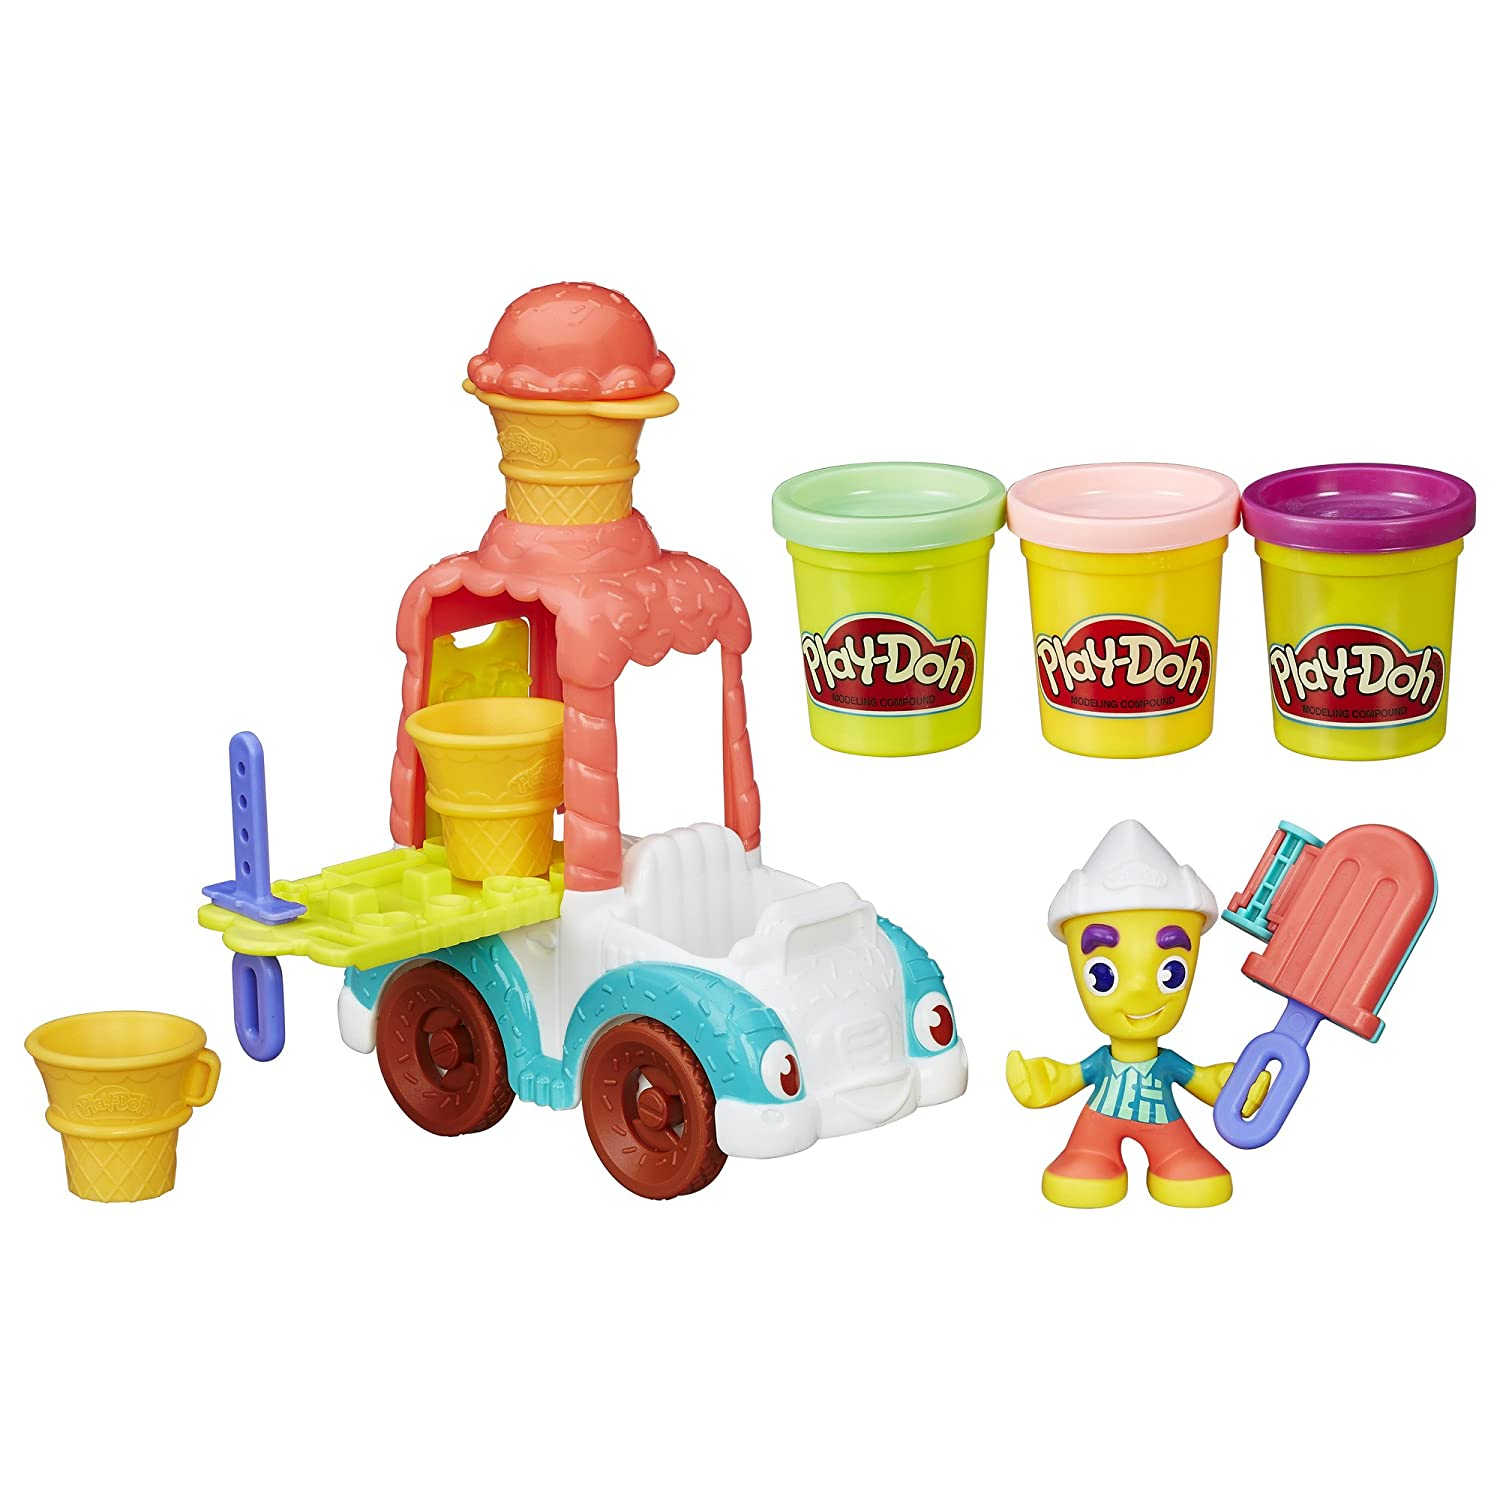 Top 8 Best Play Dough Sets for Boys Reviews in 2020 5